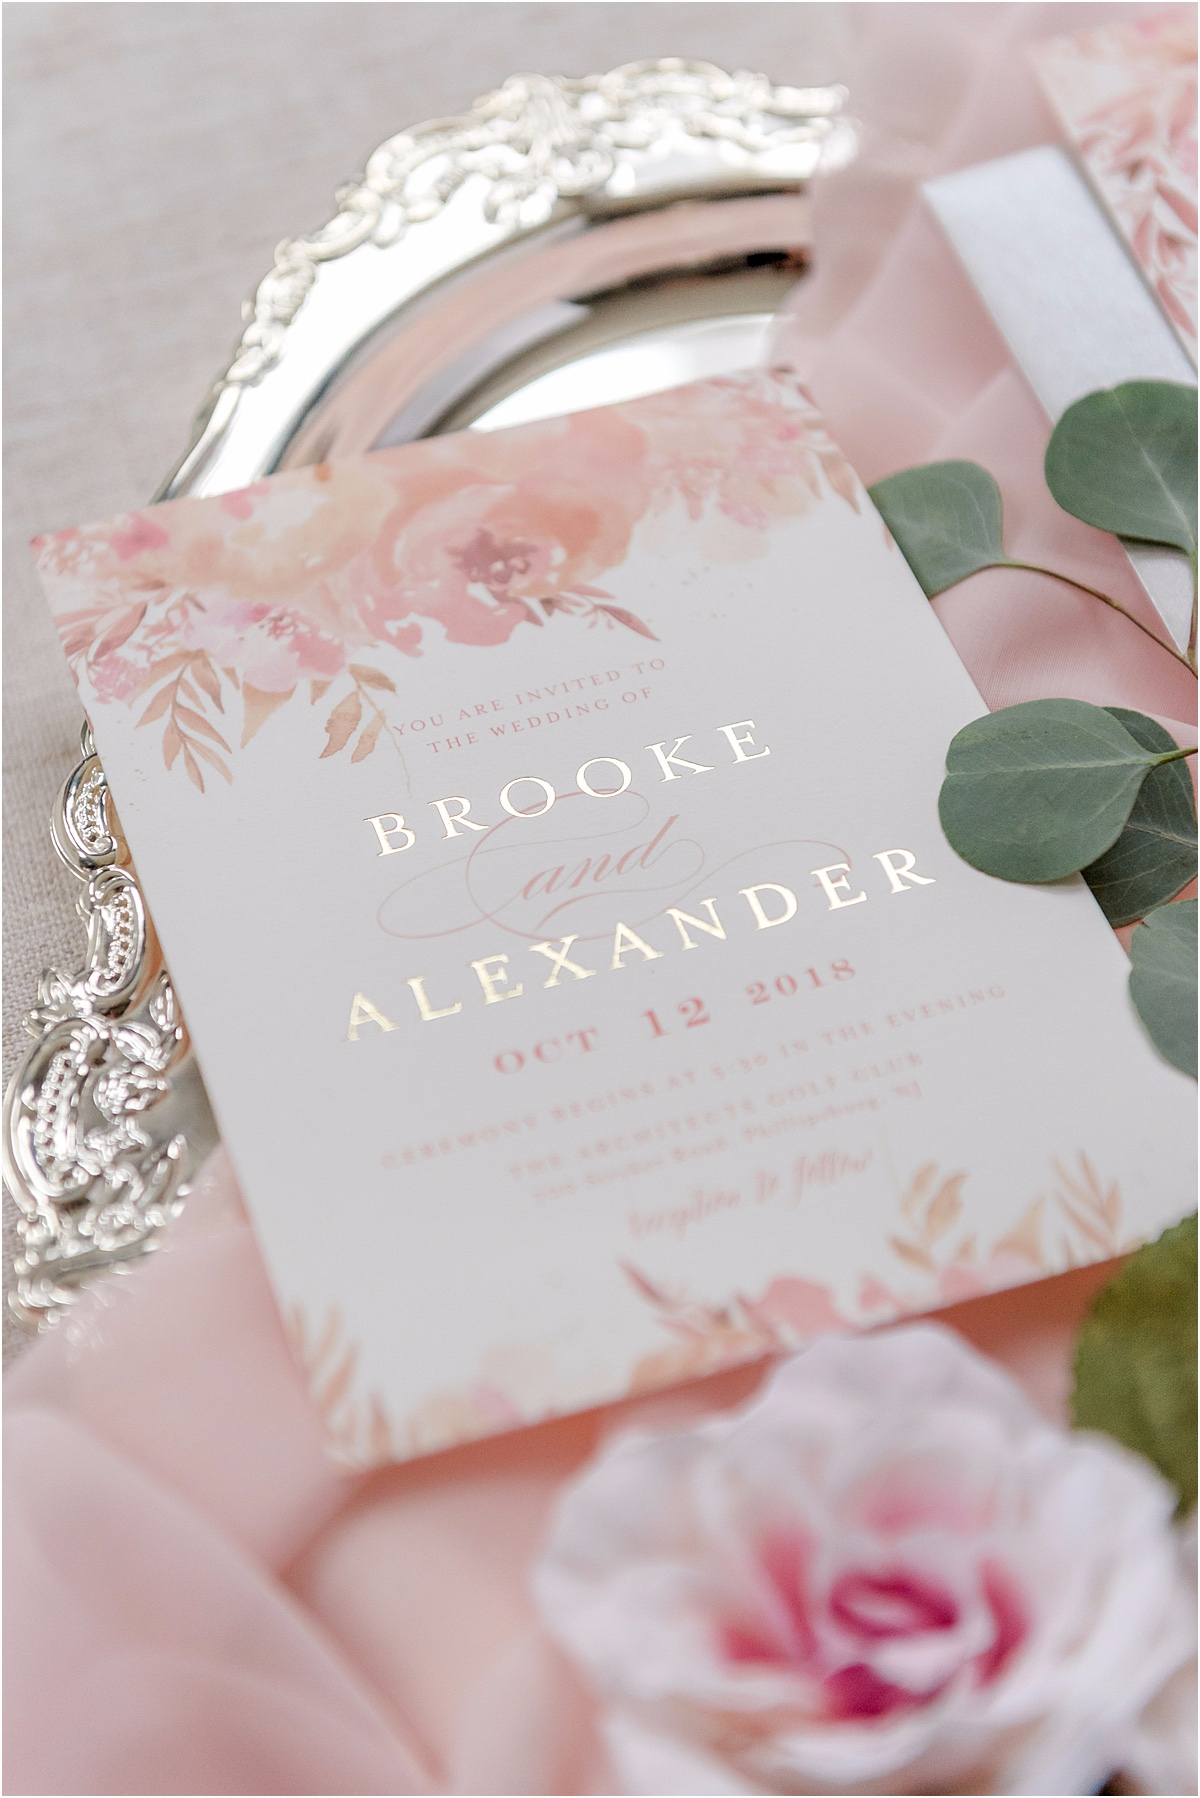 gold leaf wedding invitation with floral accents